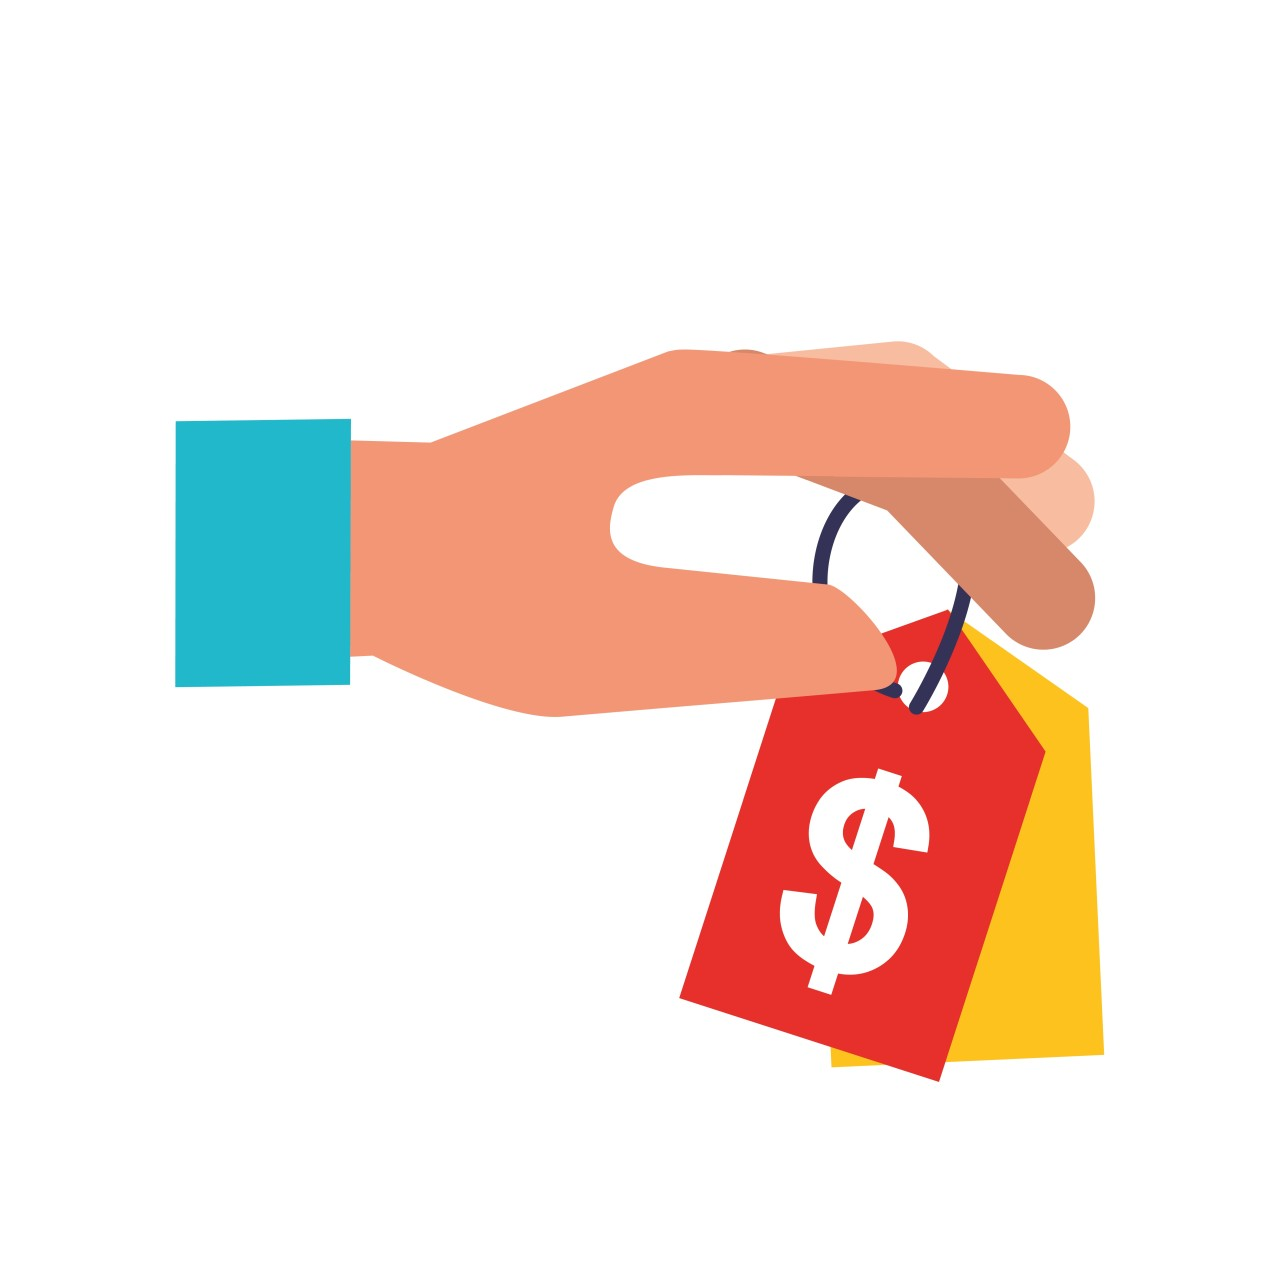 Pricing strategies for new hardware products